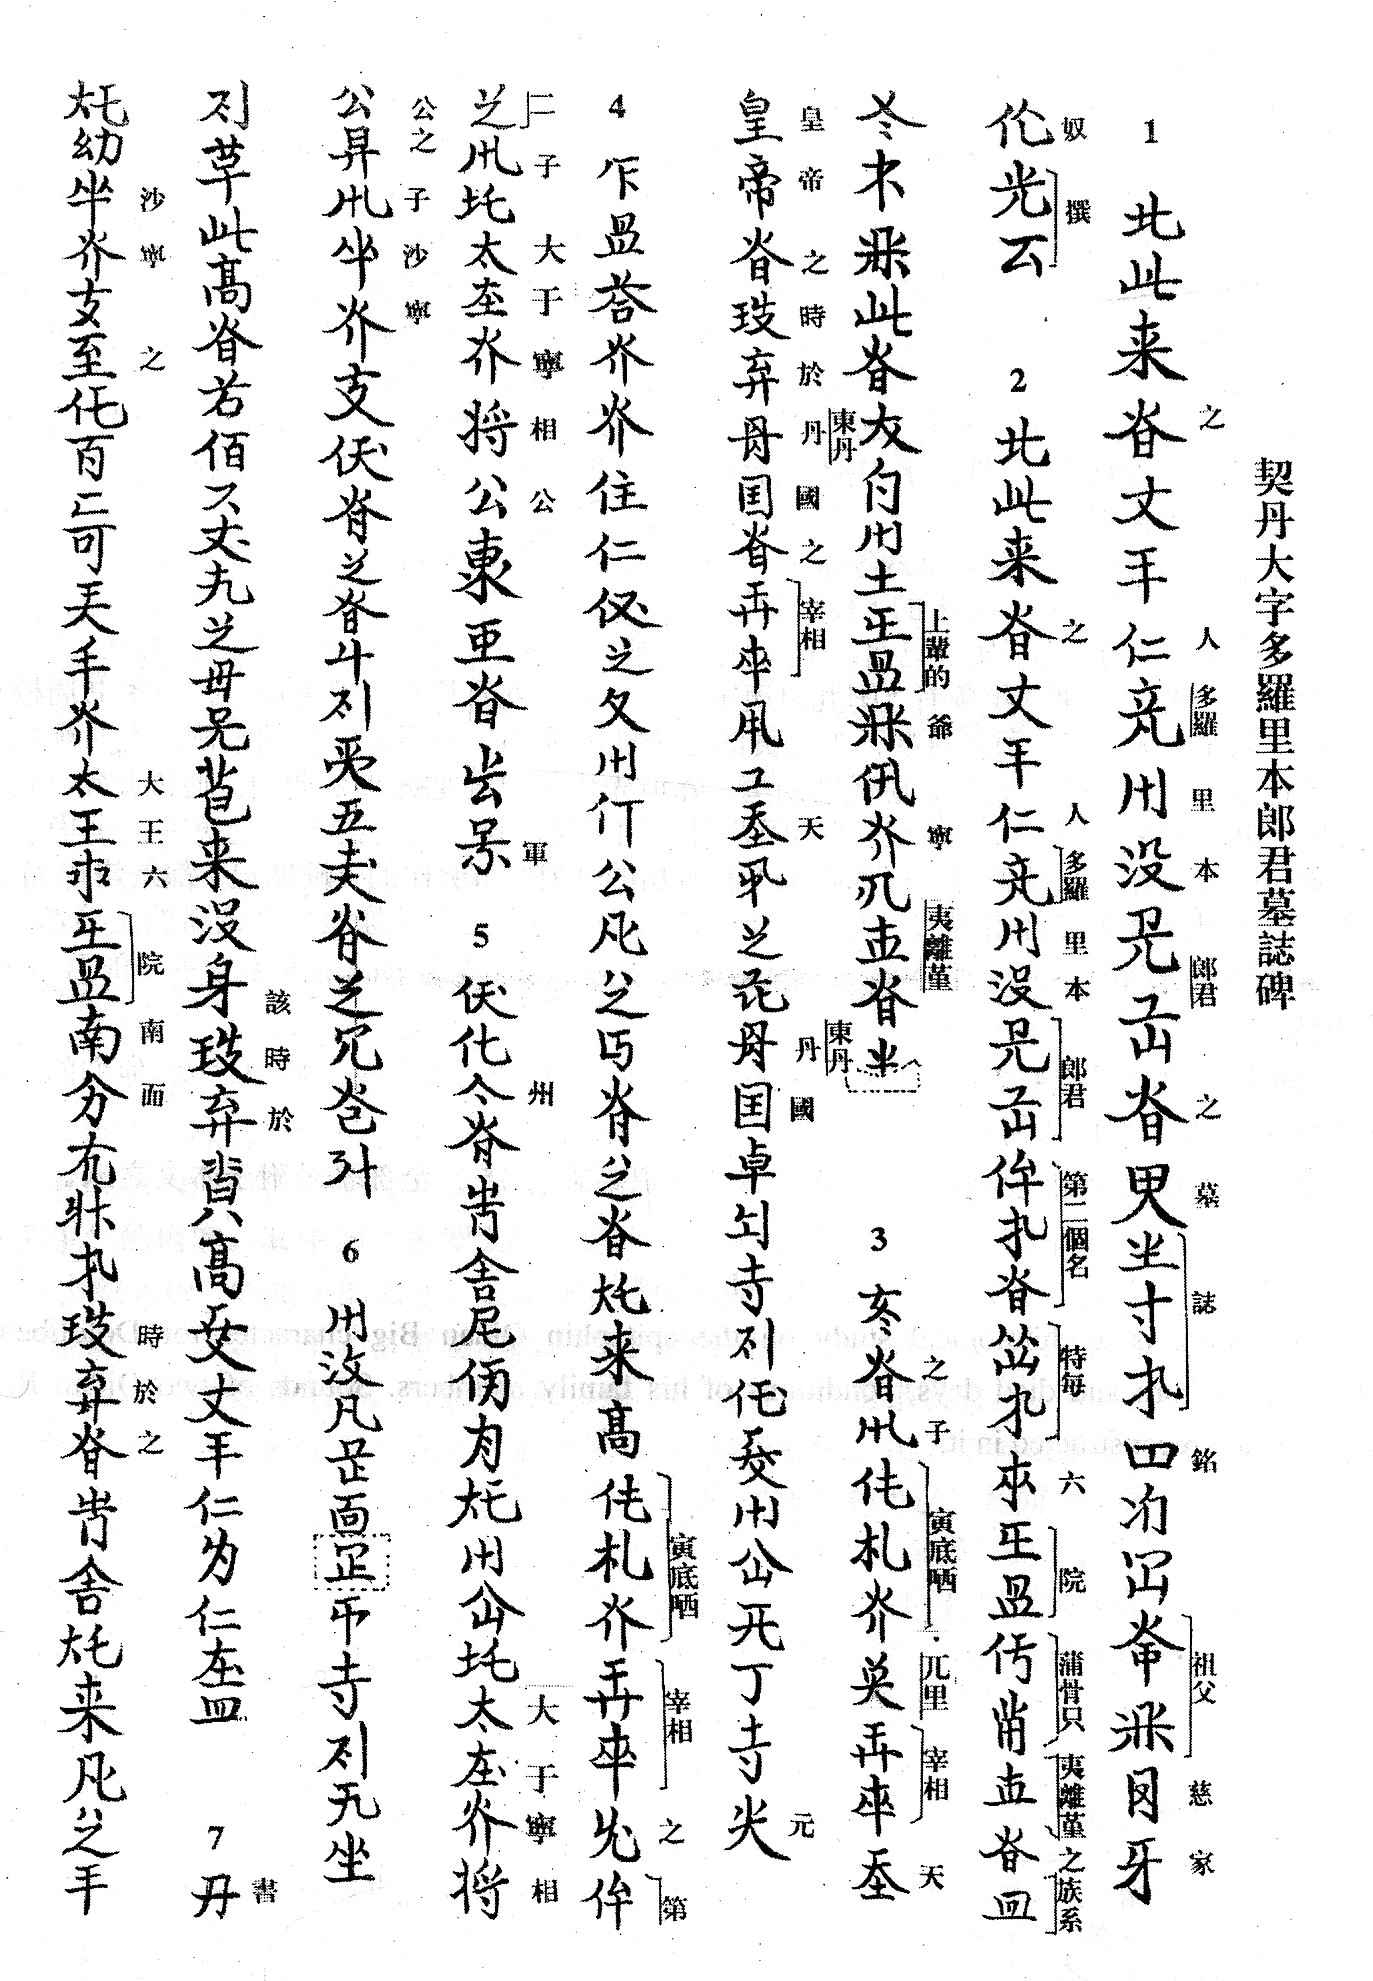 Transcription Khitan Memorial Stone